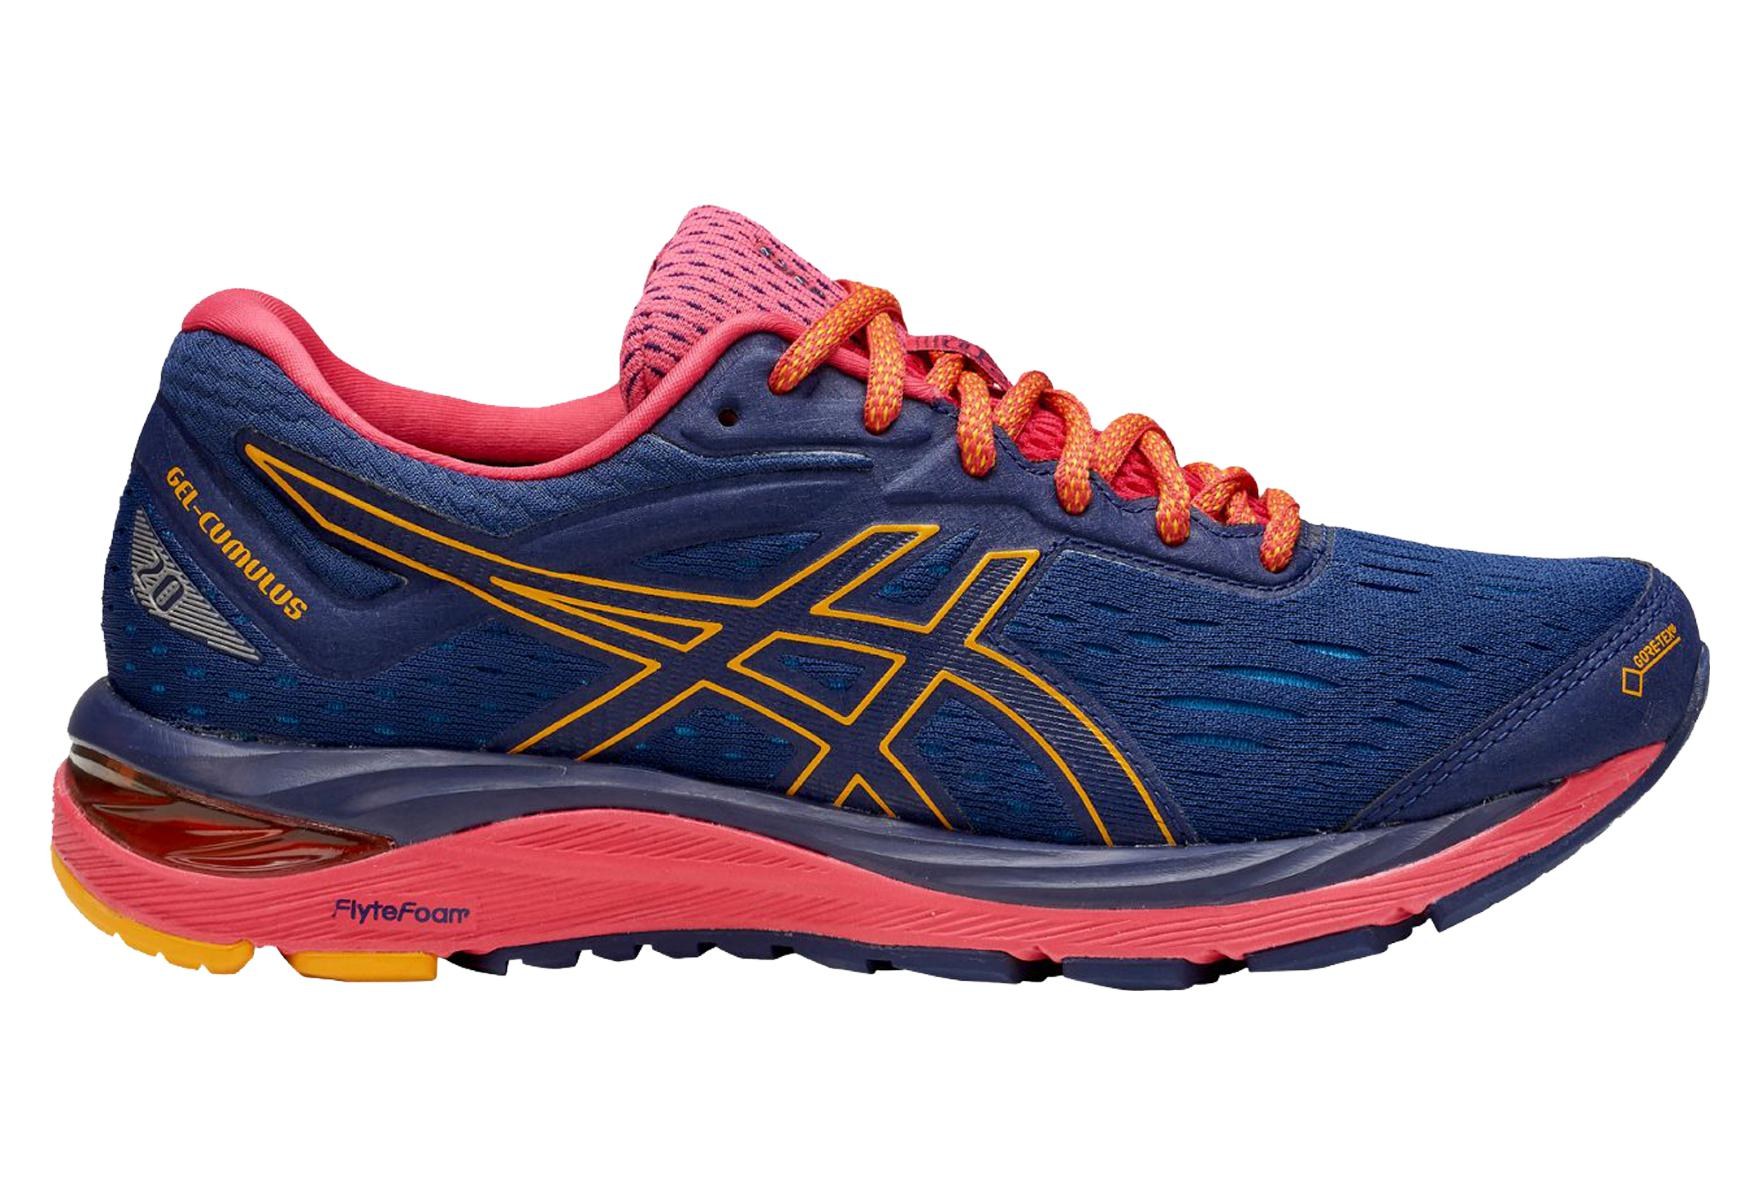 online retailer 596e2 363eb Asics Gel-Cumulus 20 G-TX Blue Red Orange Women